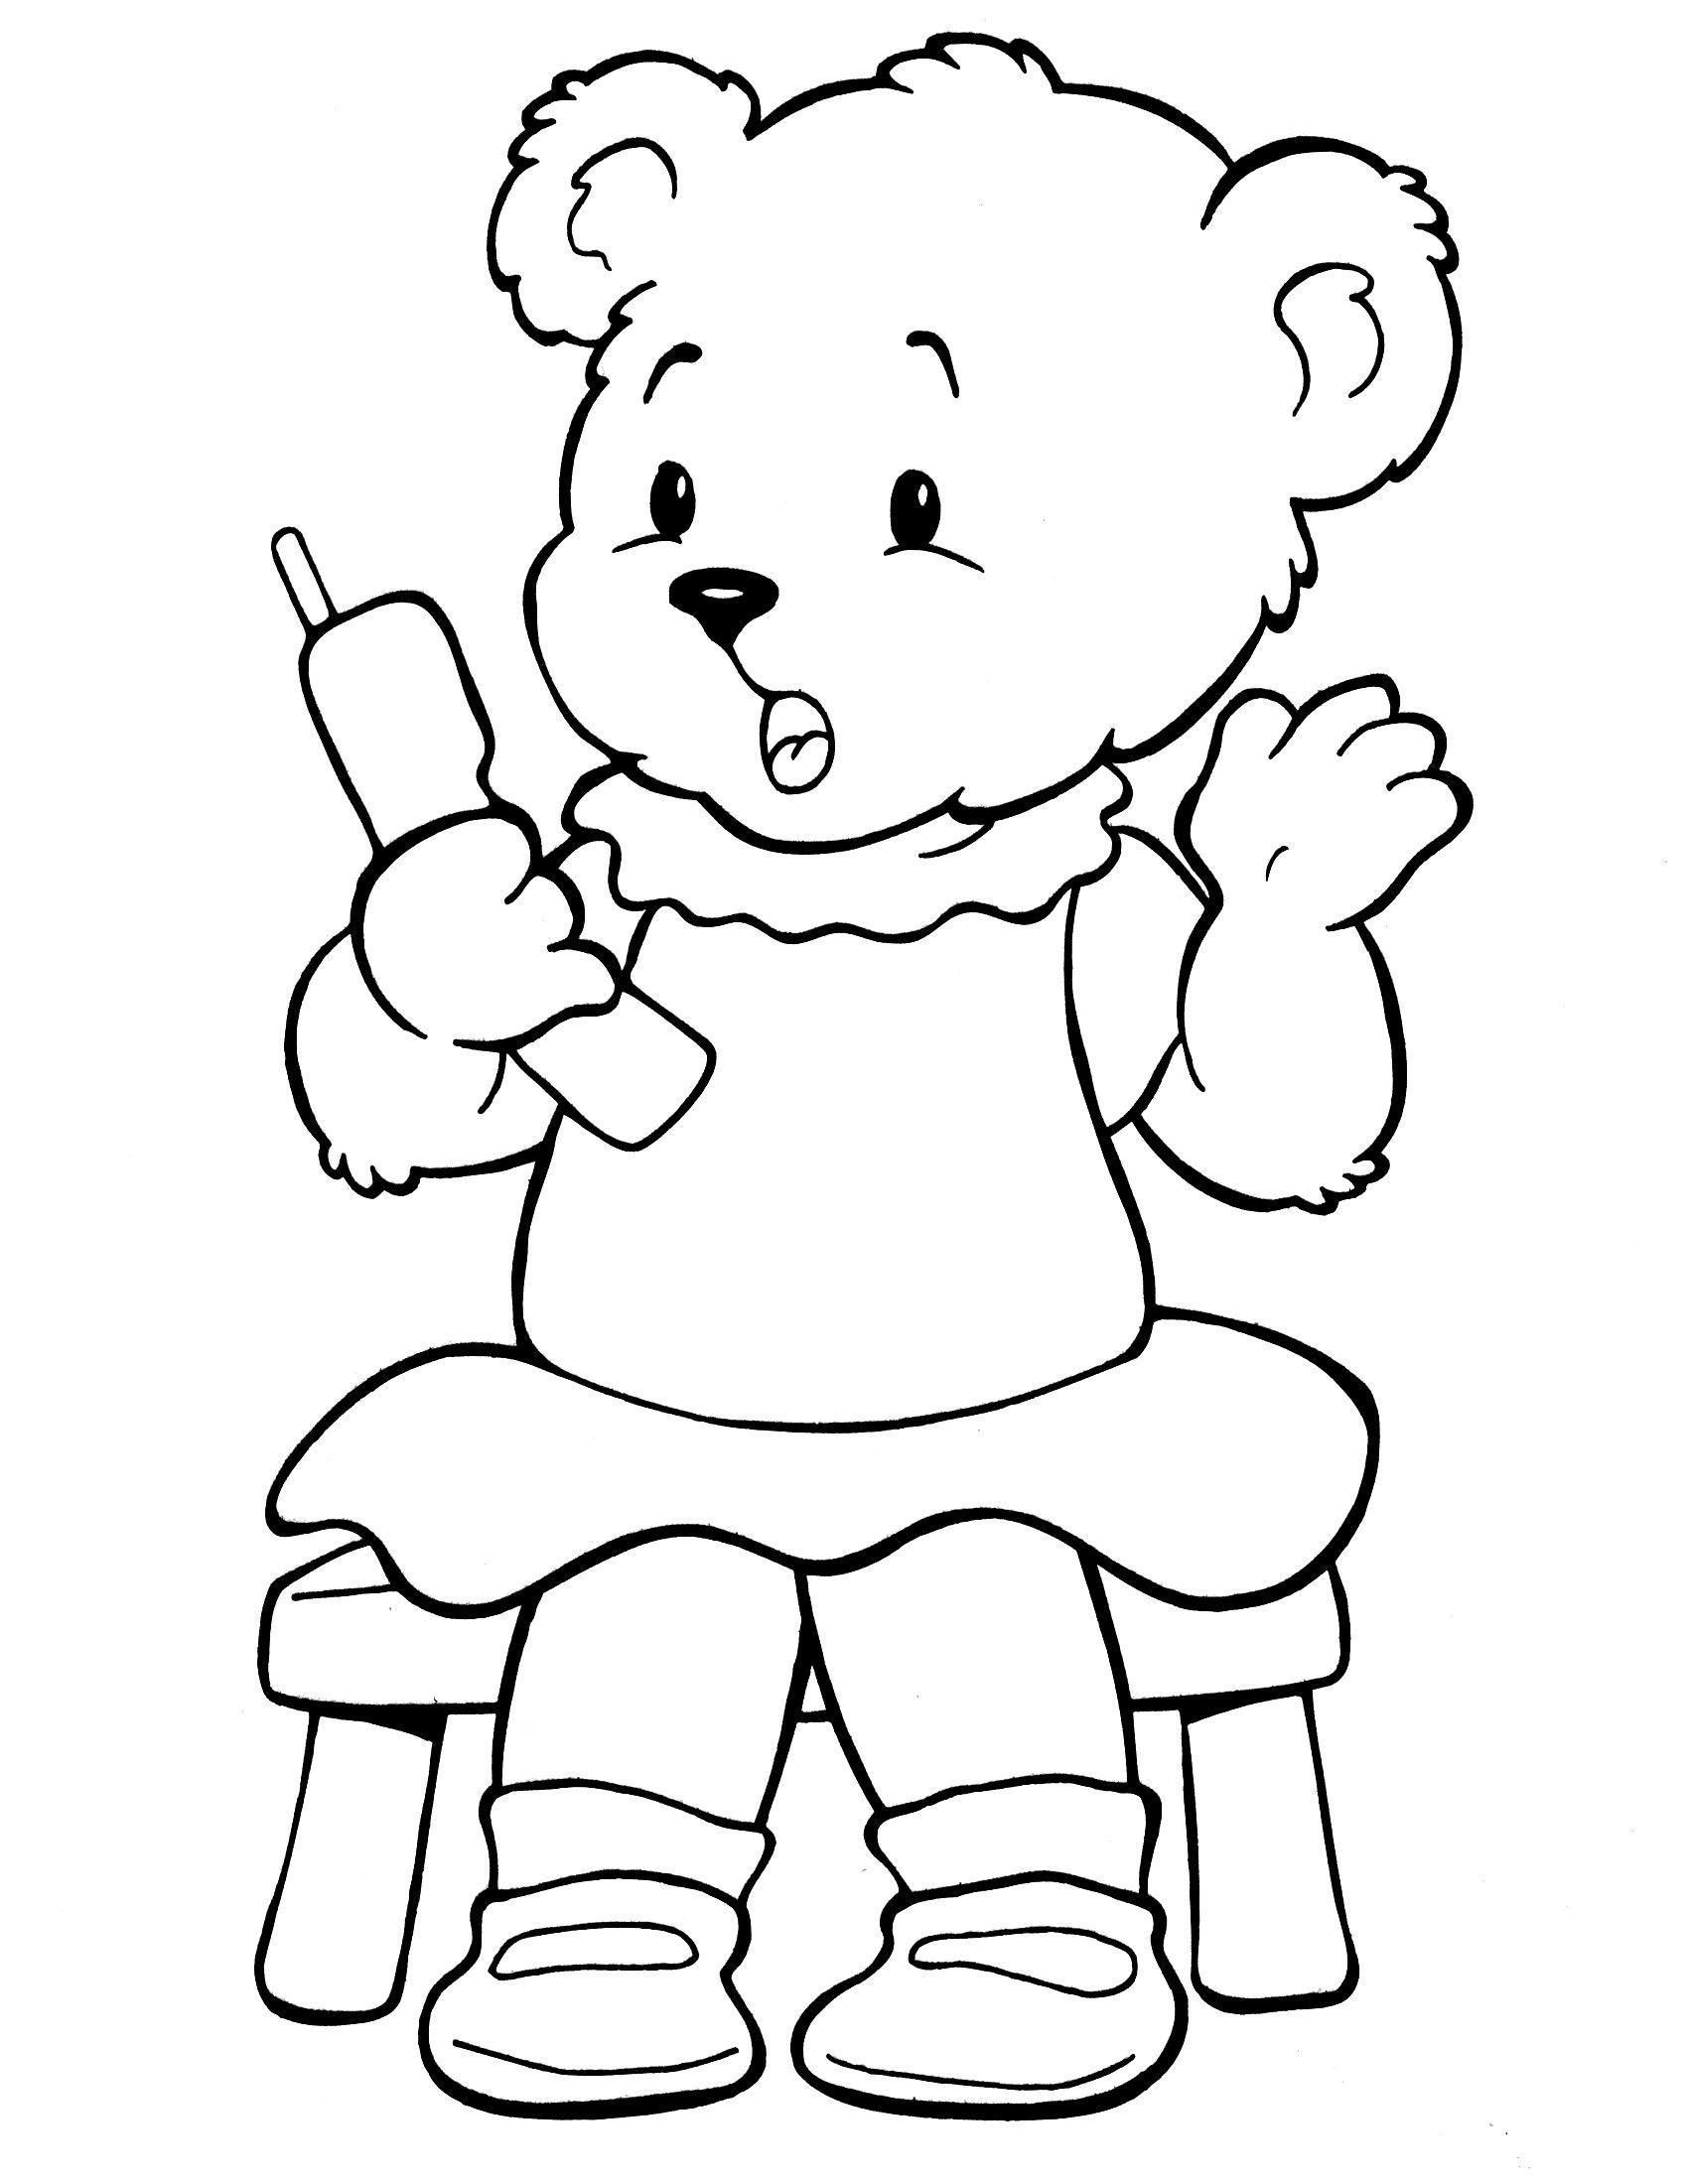 Trendy Crayola Coloring Pages Has Crayola Coloring Pages On With Hd Resolution 1700x2200 Pixels Crayola Coloring Pages Summer Coloring Pages Coloring Pages [ 2200 x 1700 Pixel ]